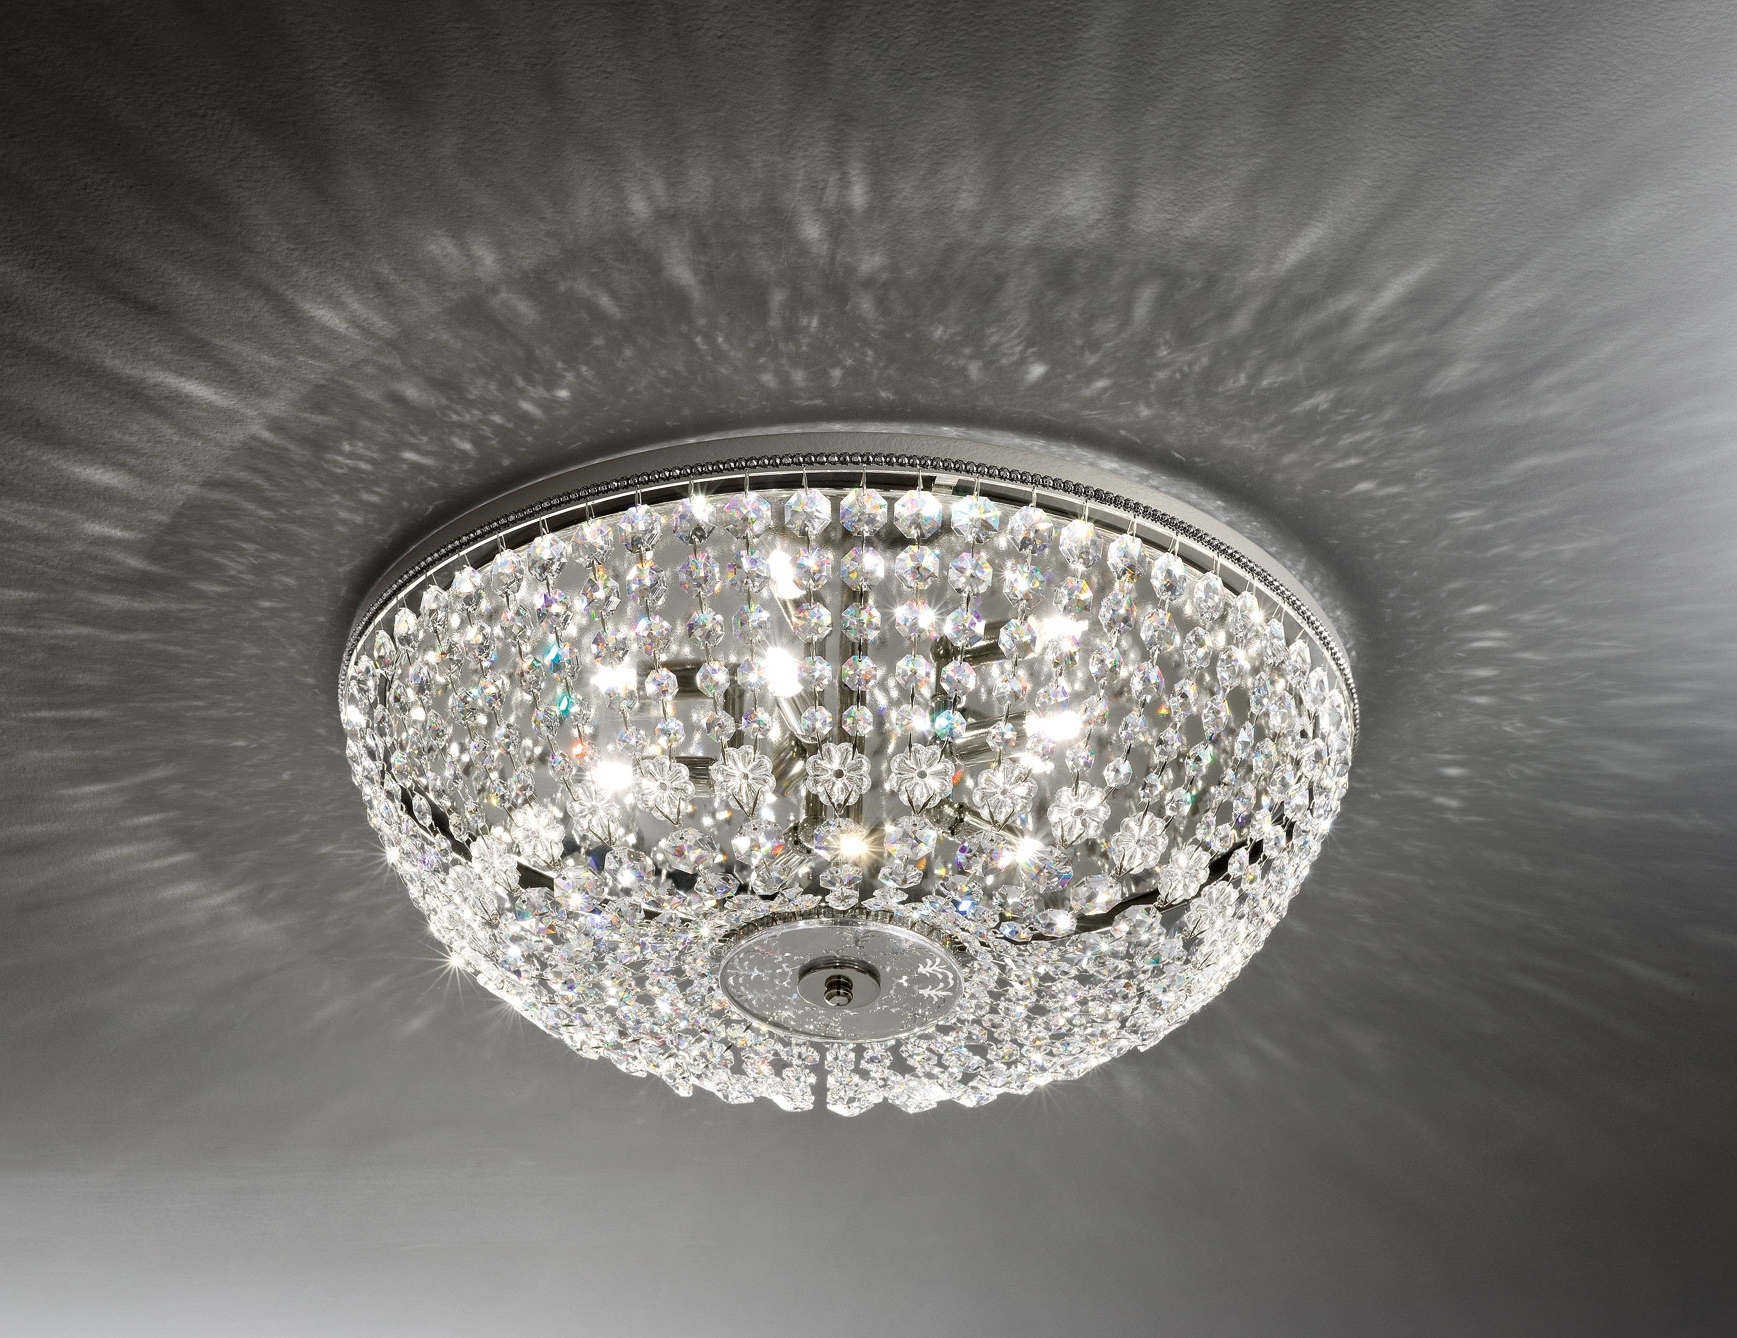 Bathroom Lighting Chandeliers Regarding Well Known Light Fixture : Small Chandeliers Ikea Crystal Lighting City Of (View 5 of 20)